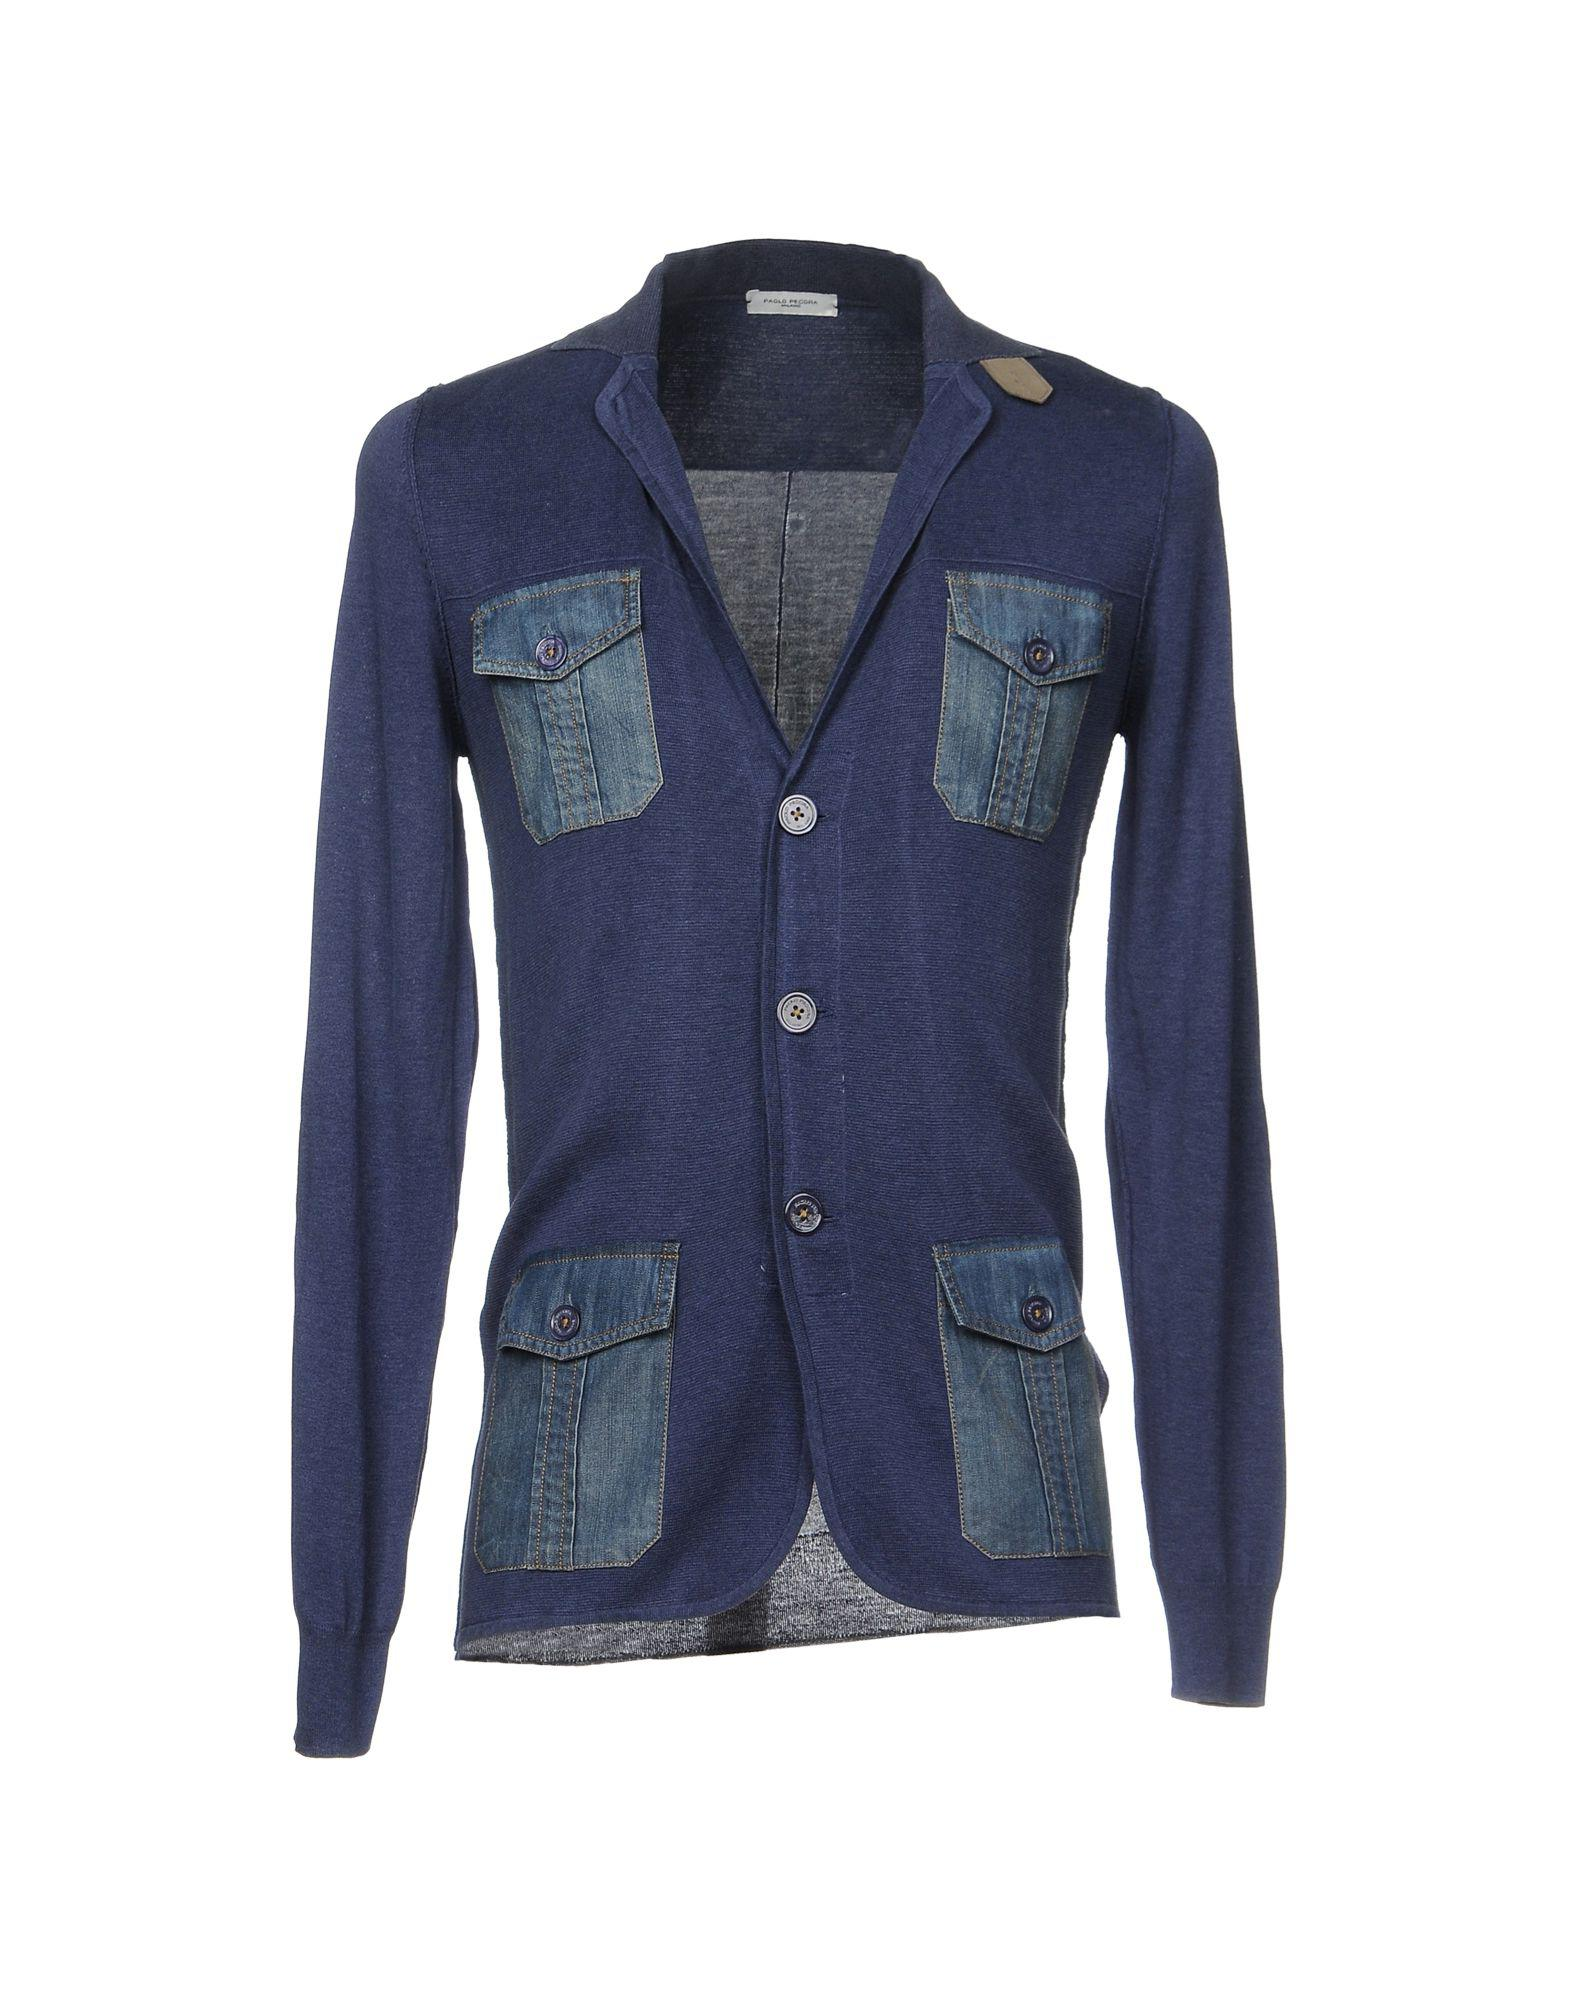 25f12f86383d5 Lyst - Paolo Pecora Cardigans in Blue for Men